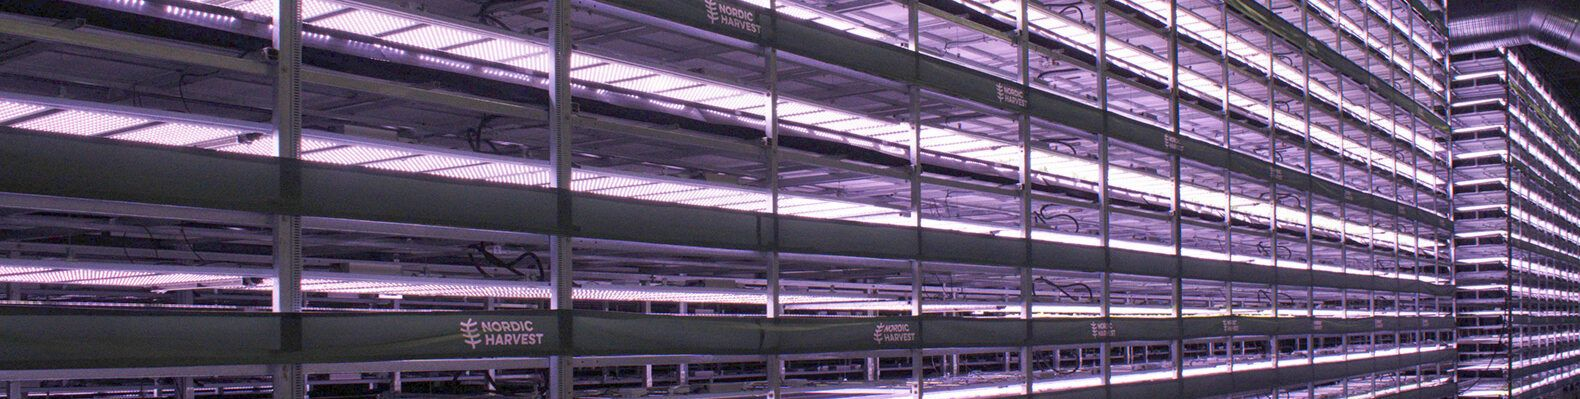 rows of a vertical farm structure